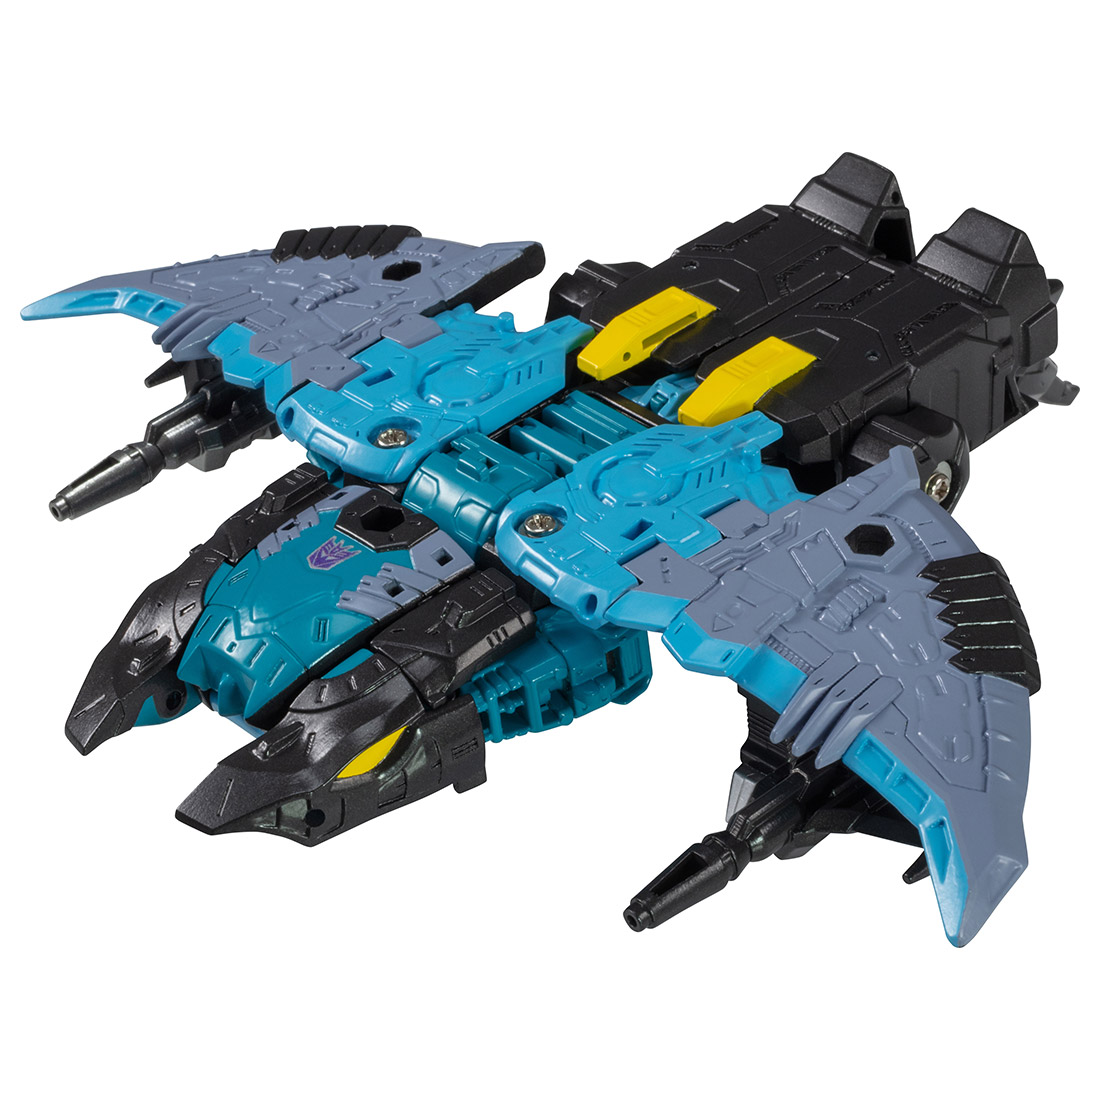 Official Images of Generations Selects Seacons Nautilator and Seawing aka Lobclaw and Kraken